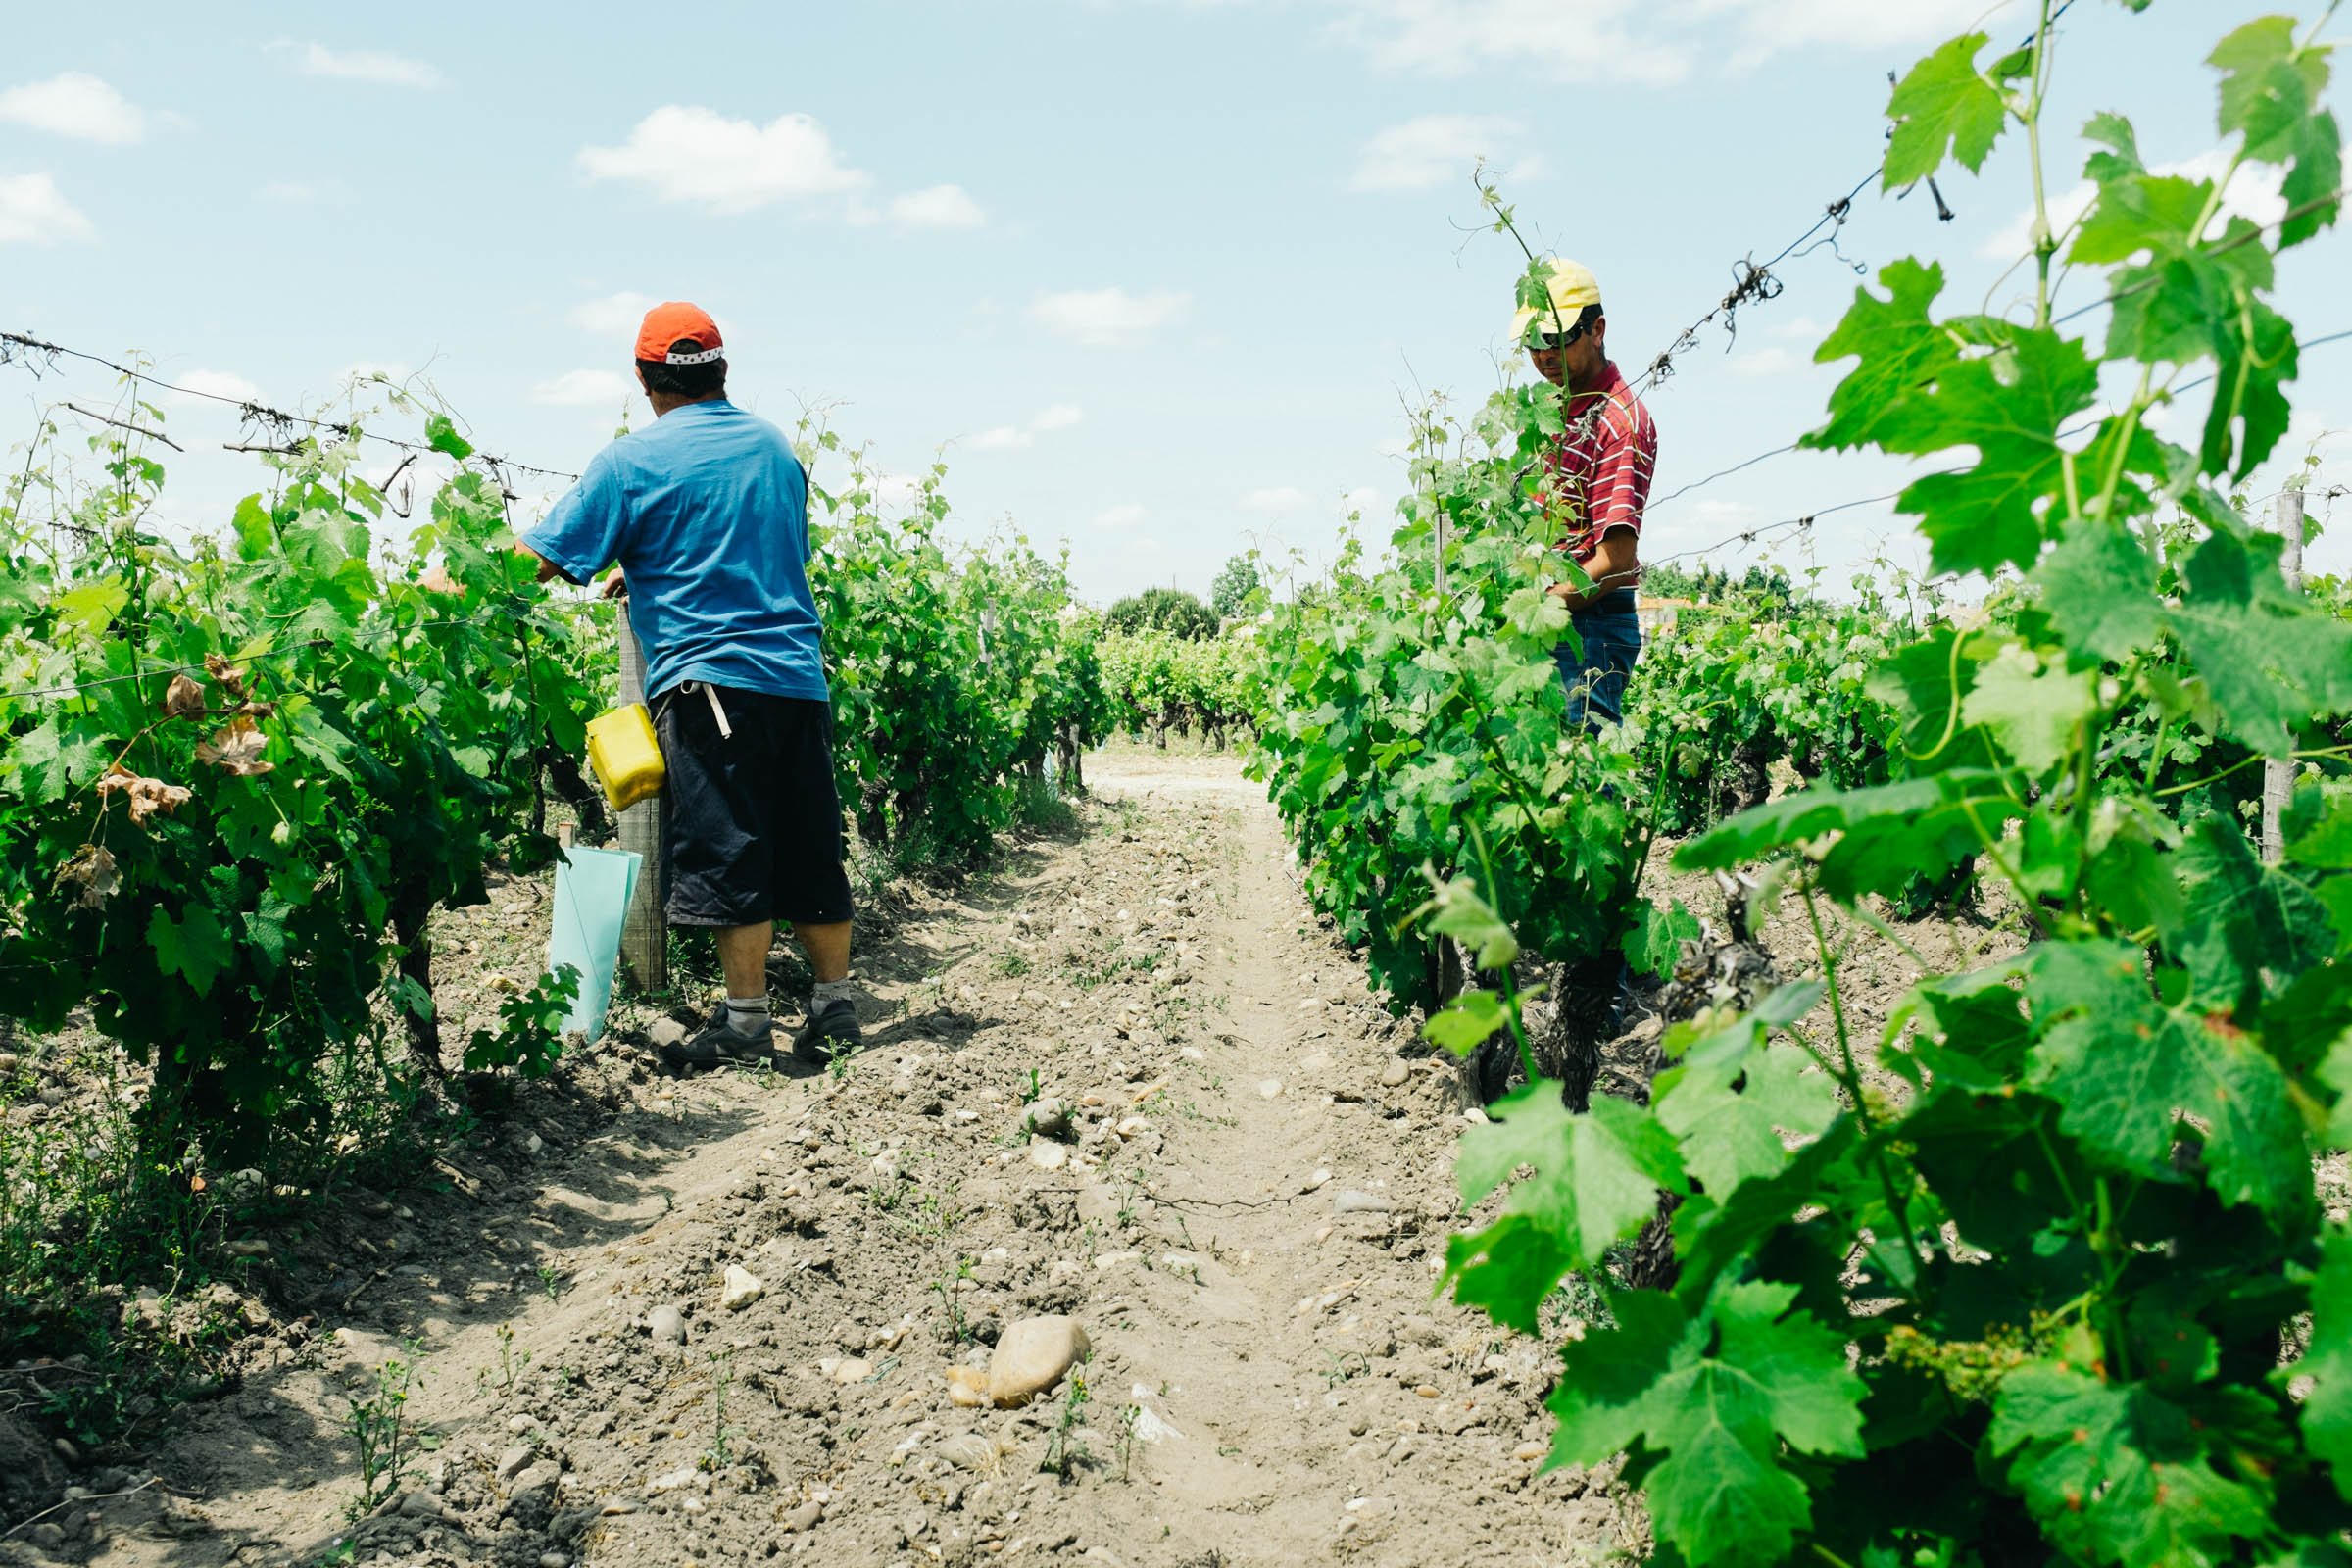 The work in the vines